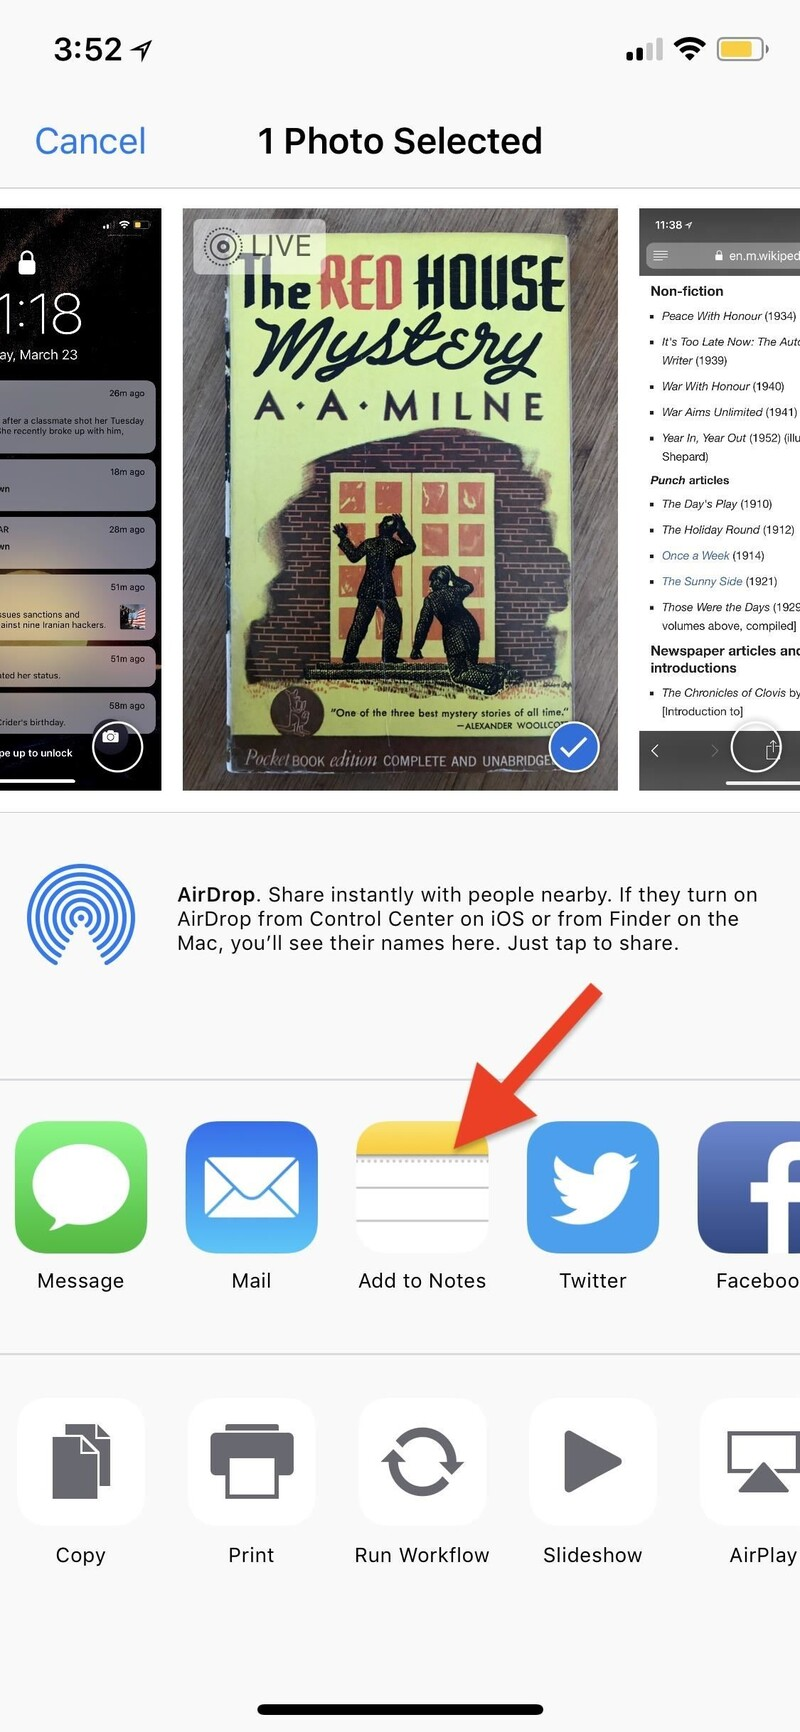 How to Hide Private Photos, 18+ Photos on Your iPhone 2